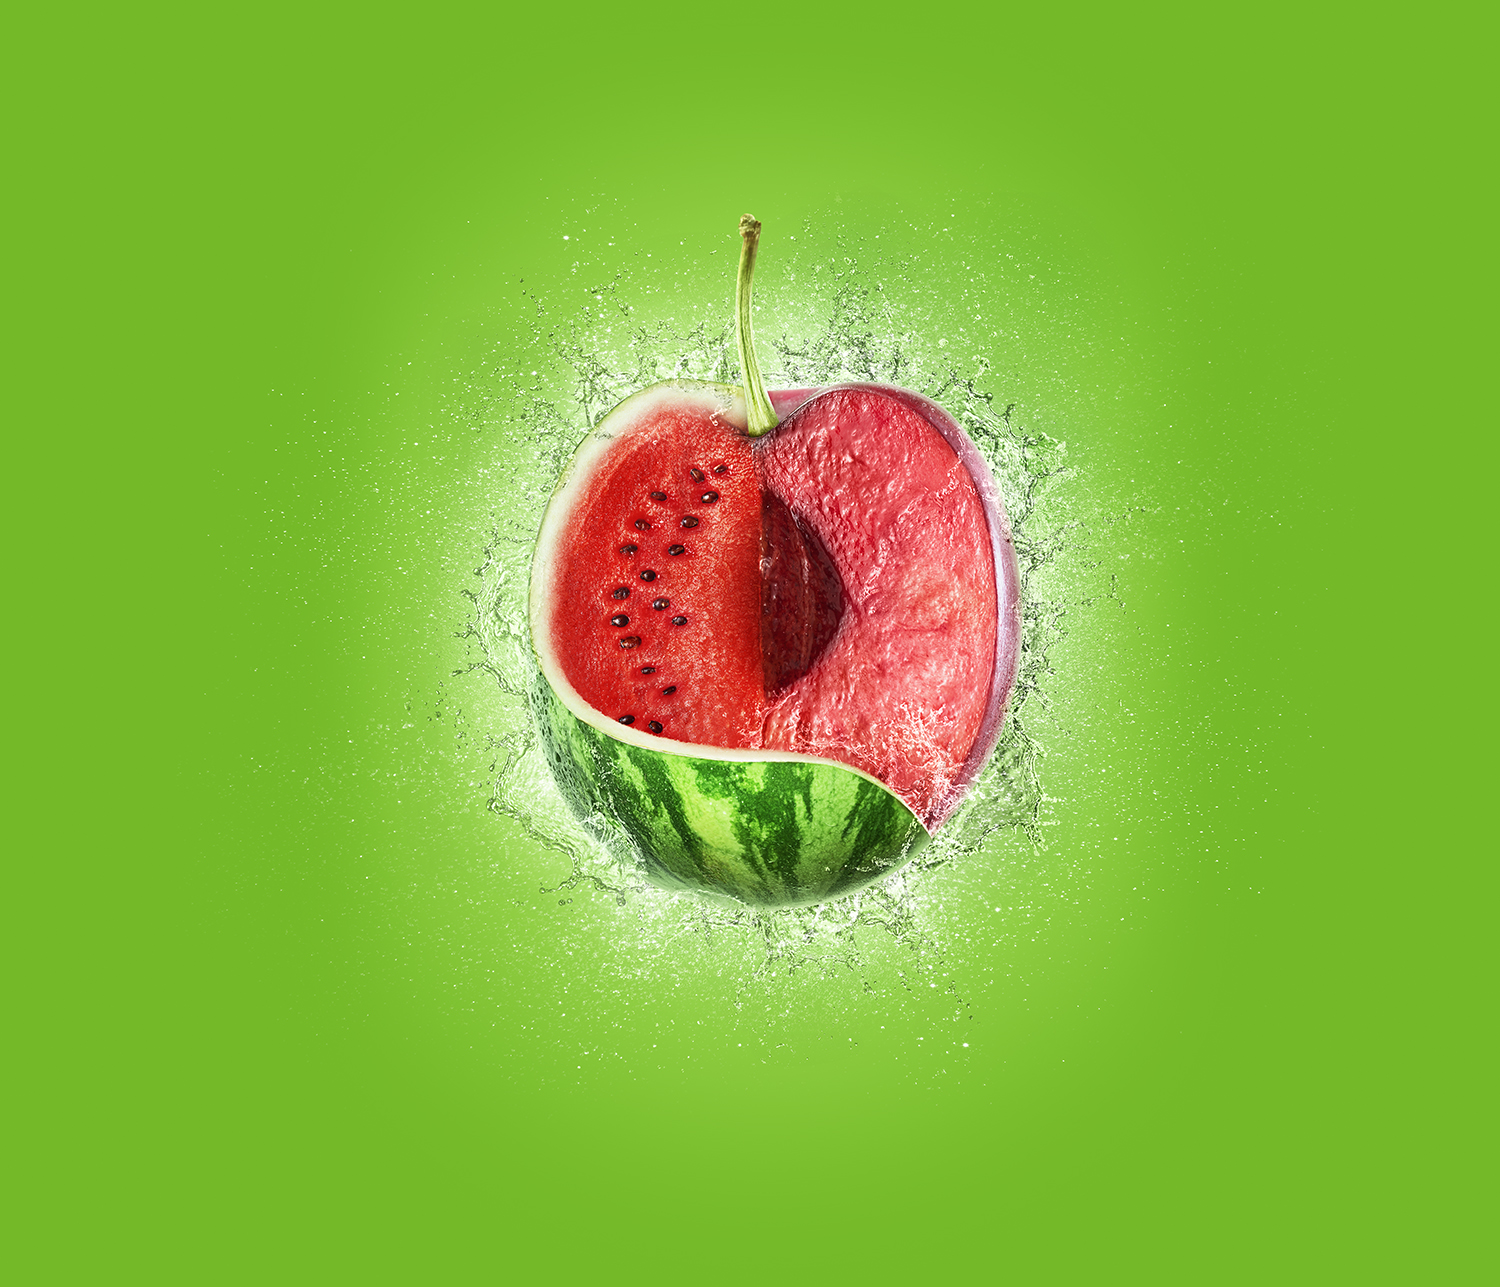 AdvertisingVype_Melon_Cherry_W3c